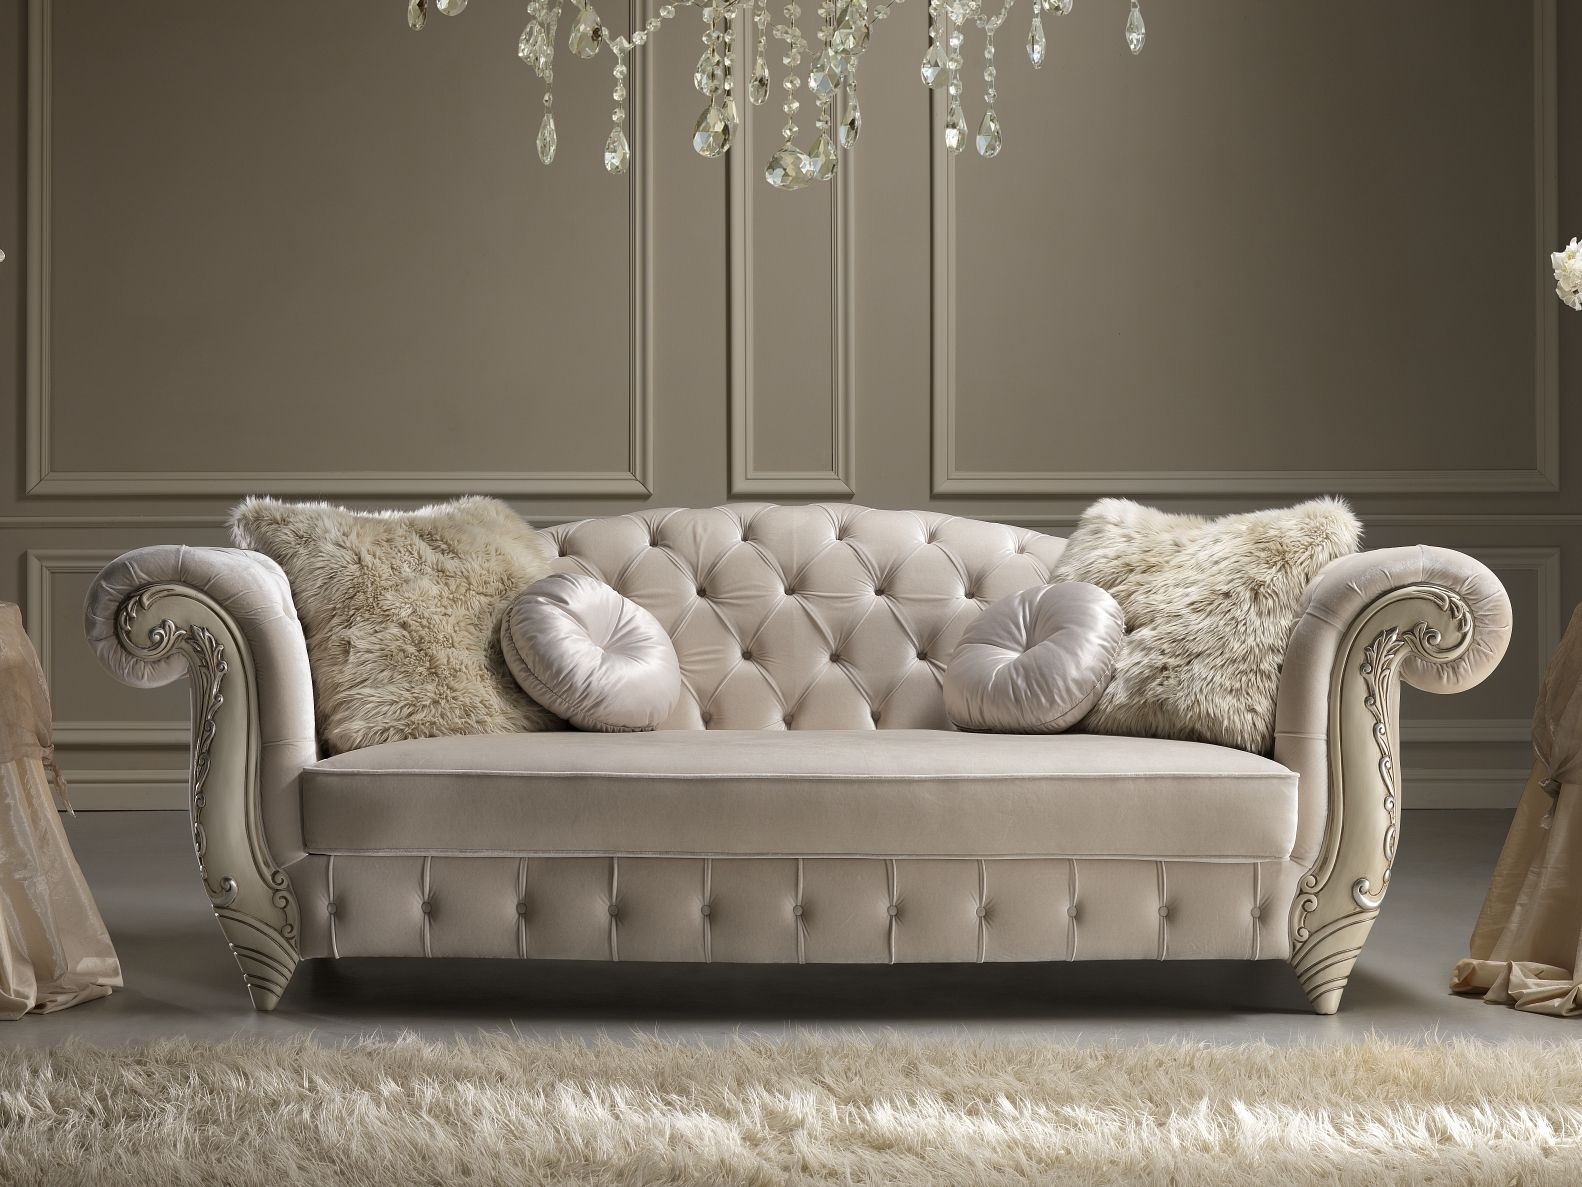 Download The Catalogue And Request Prices Of Romantic Sofa By Gold Confort Tufted Fabric Sofa Romantic Classic Sofa Designs Sofa Design Modern Sofa Designs